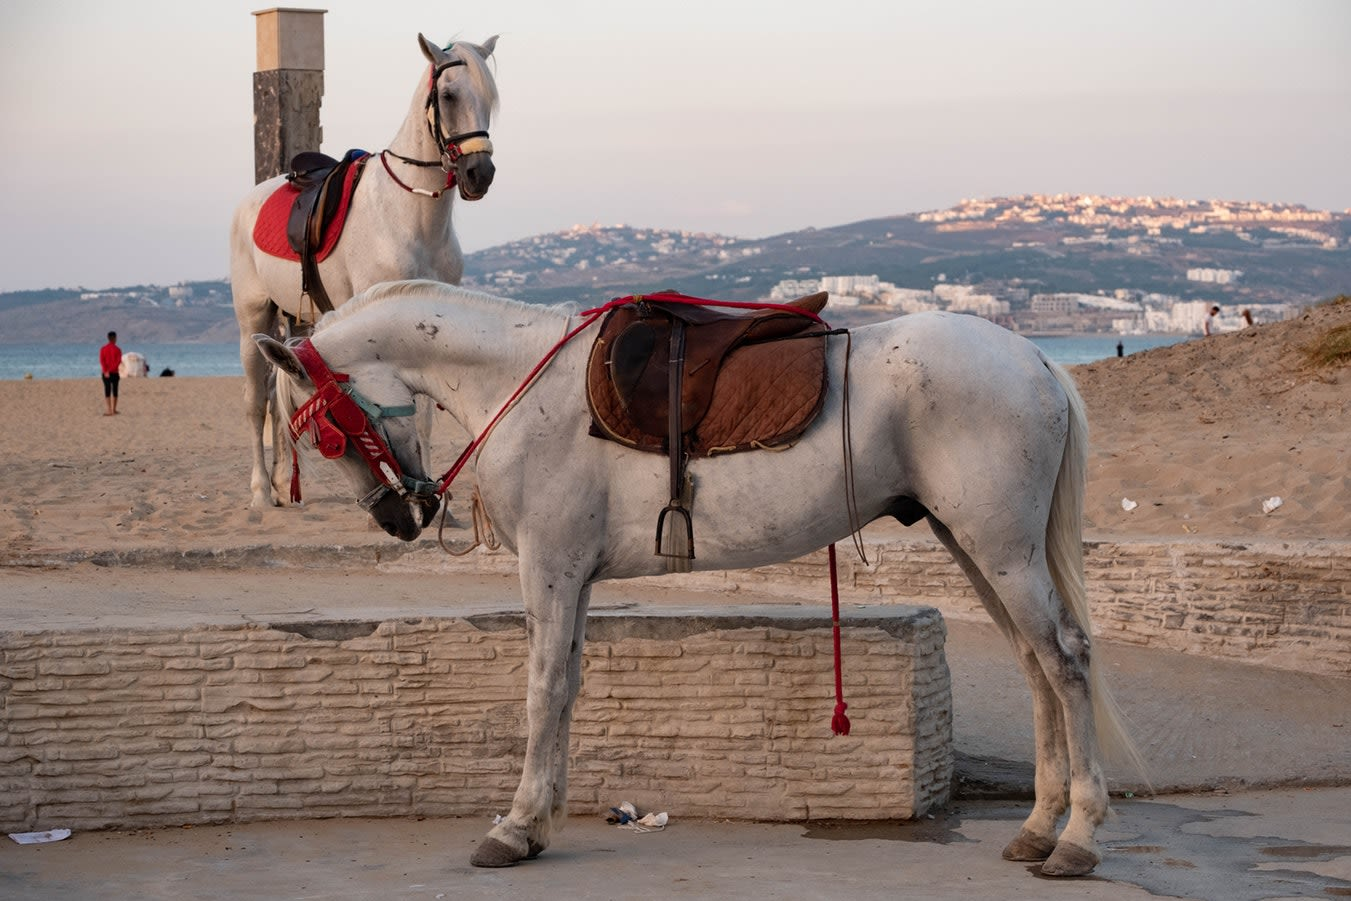 Southern Spain and Morocco Highlights Tours 2019 - 2020 -  Two white horses on the beach of Tangier